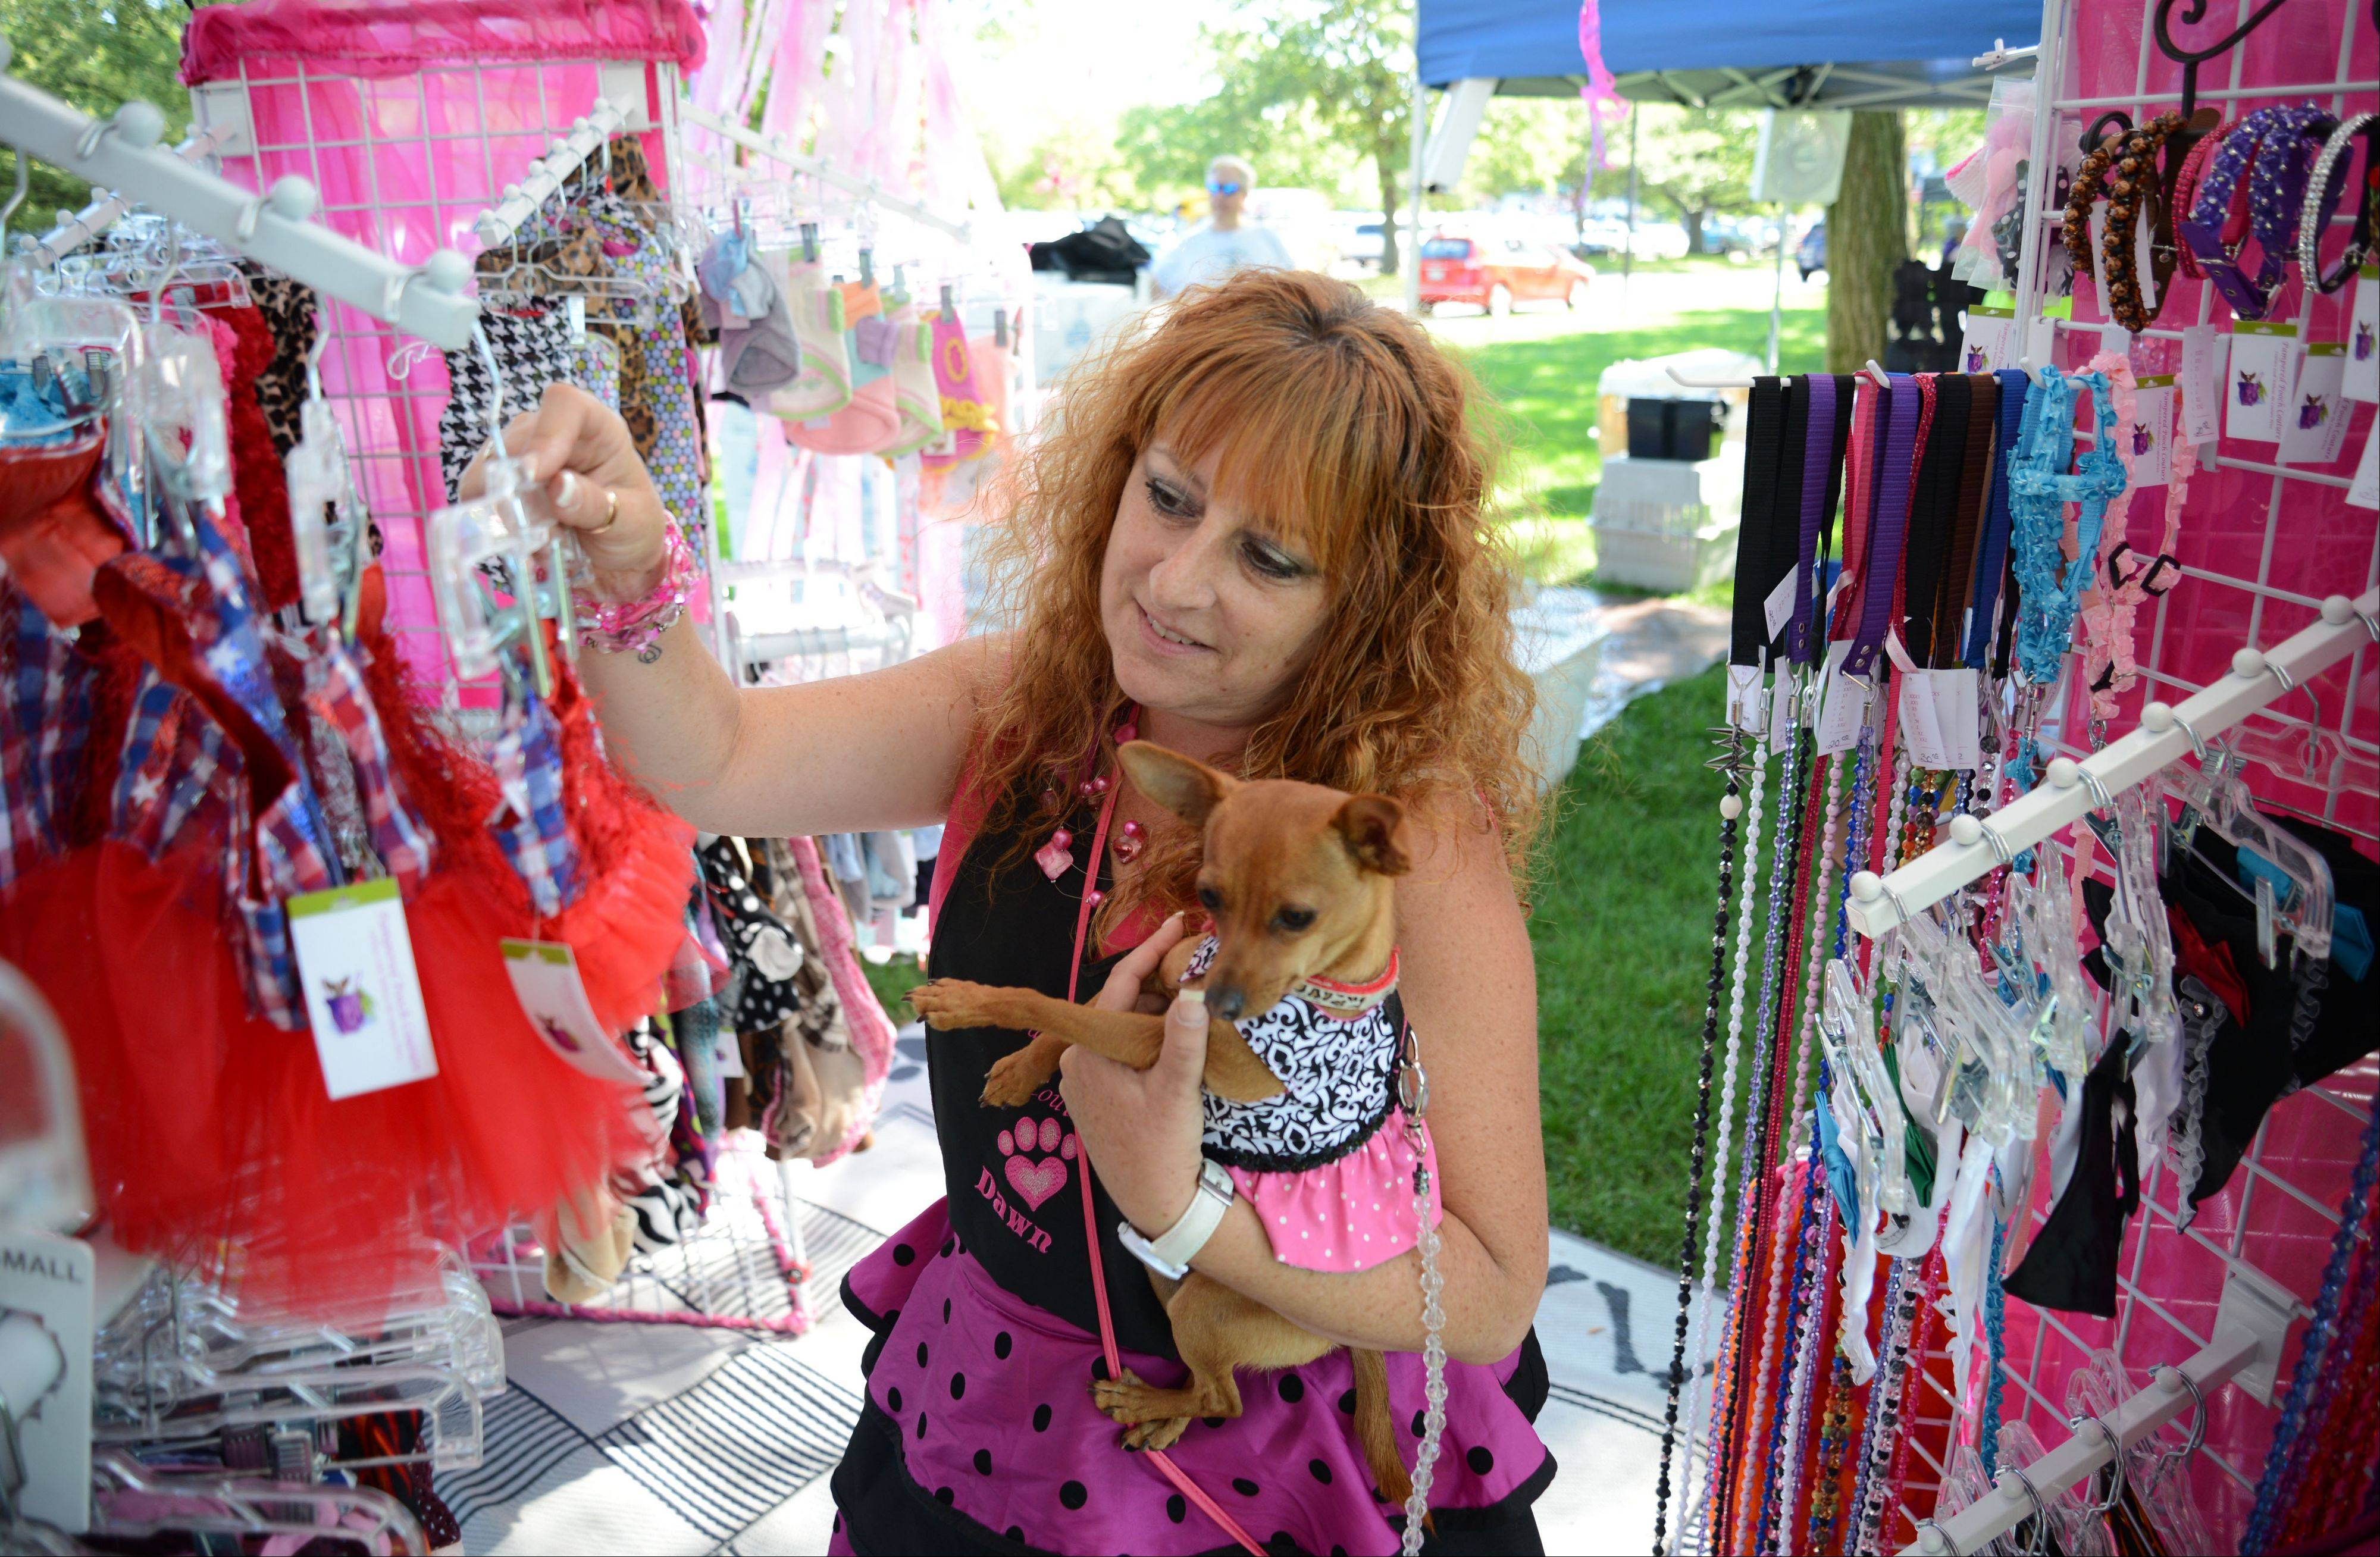 Dawn Kelsey and her dog look at items for sale at the Pampered Pooch Couture booth during the annual Dog Days celebration Saturday in Wheaton. Well over 500 people and their pets took part in this event.